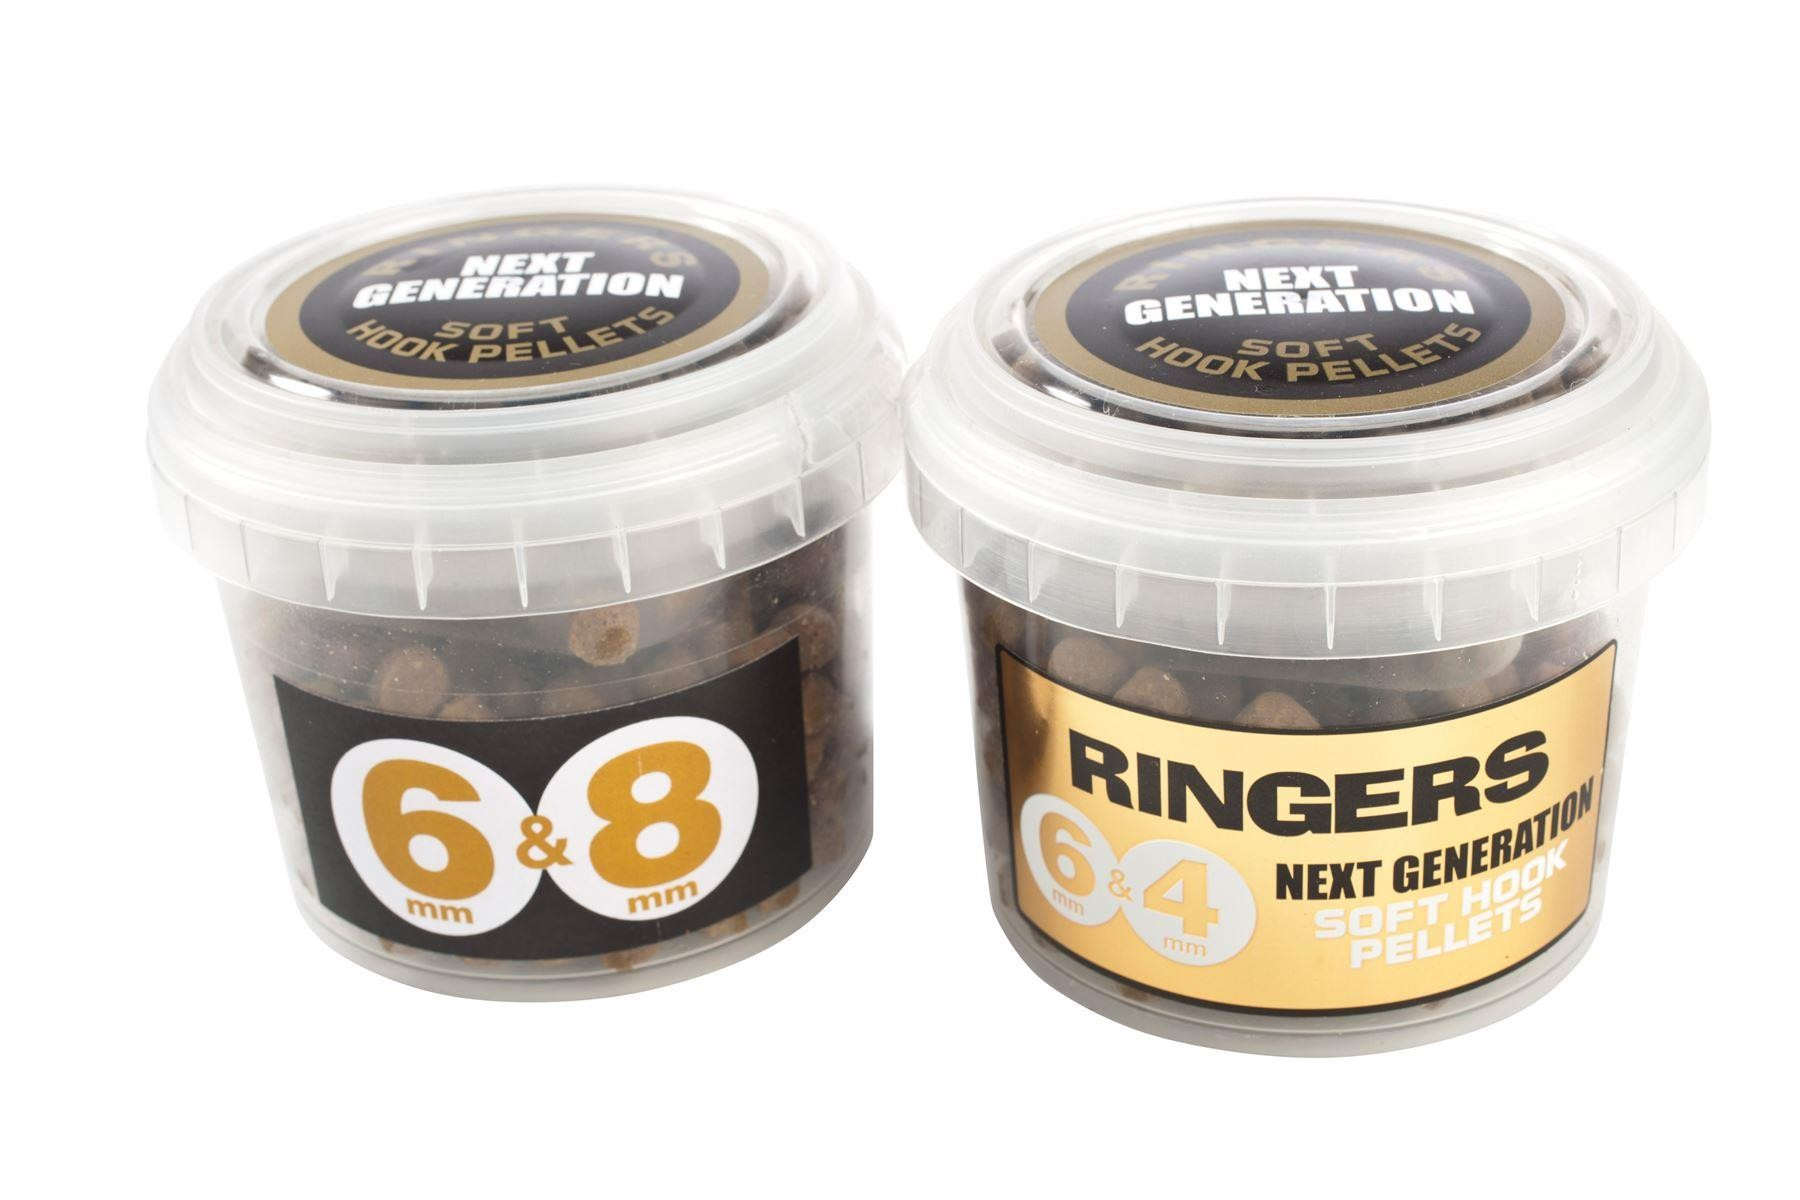 Ringers Pellets Next Generation Soft Hook Pellets 8mm & 6mm 200g